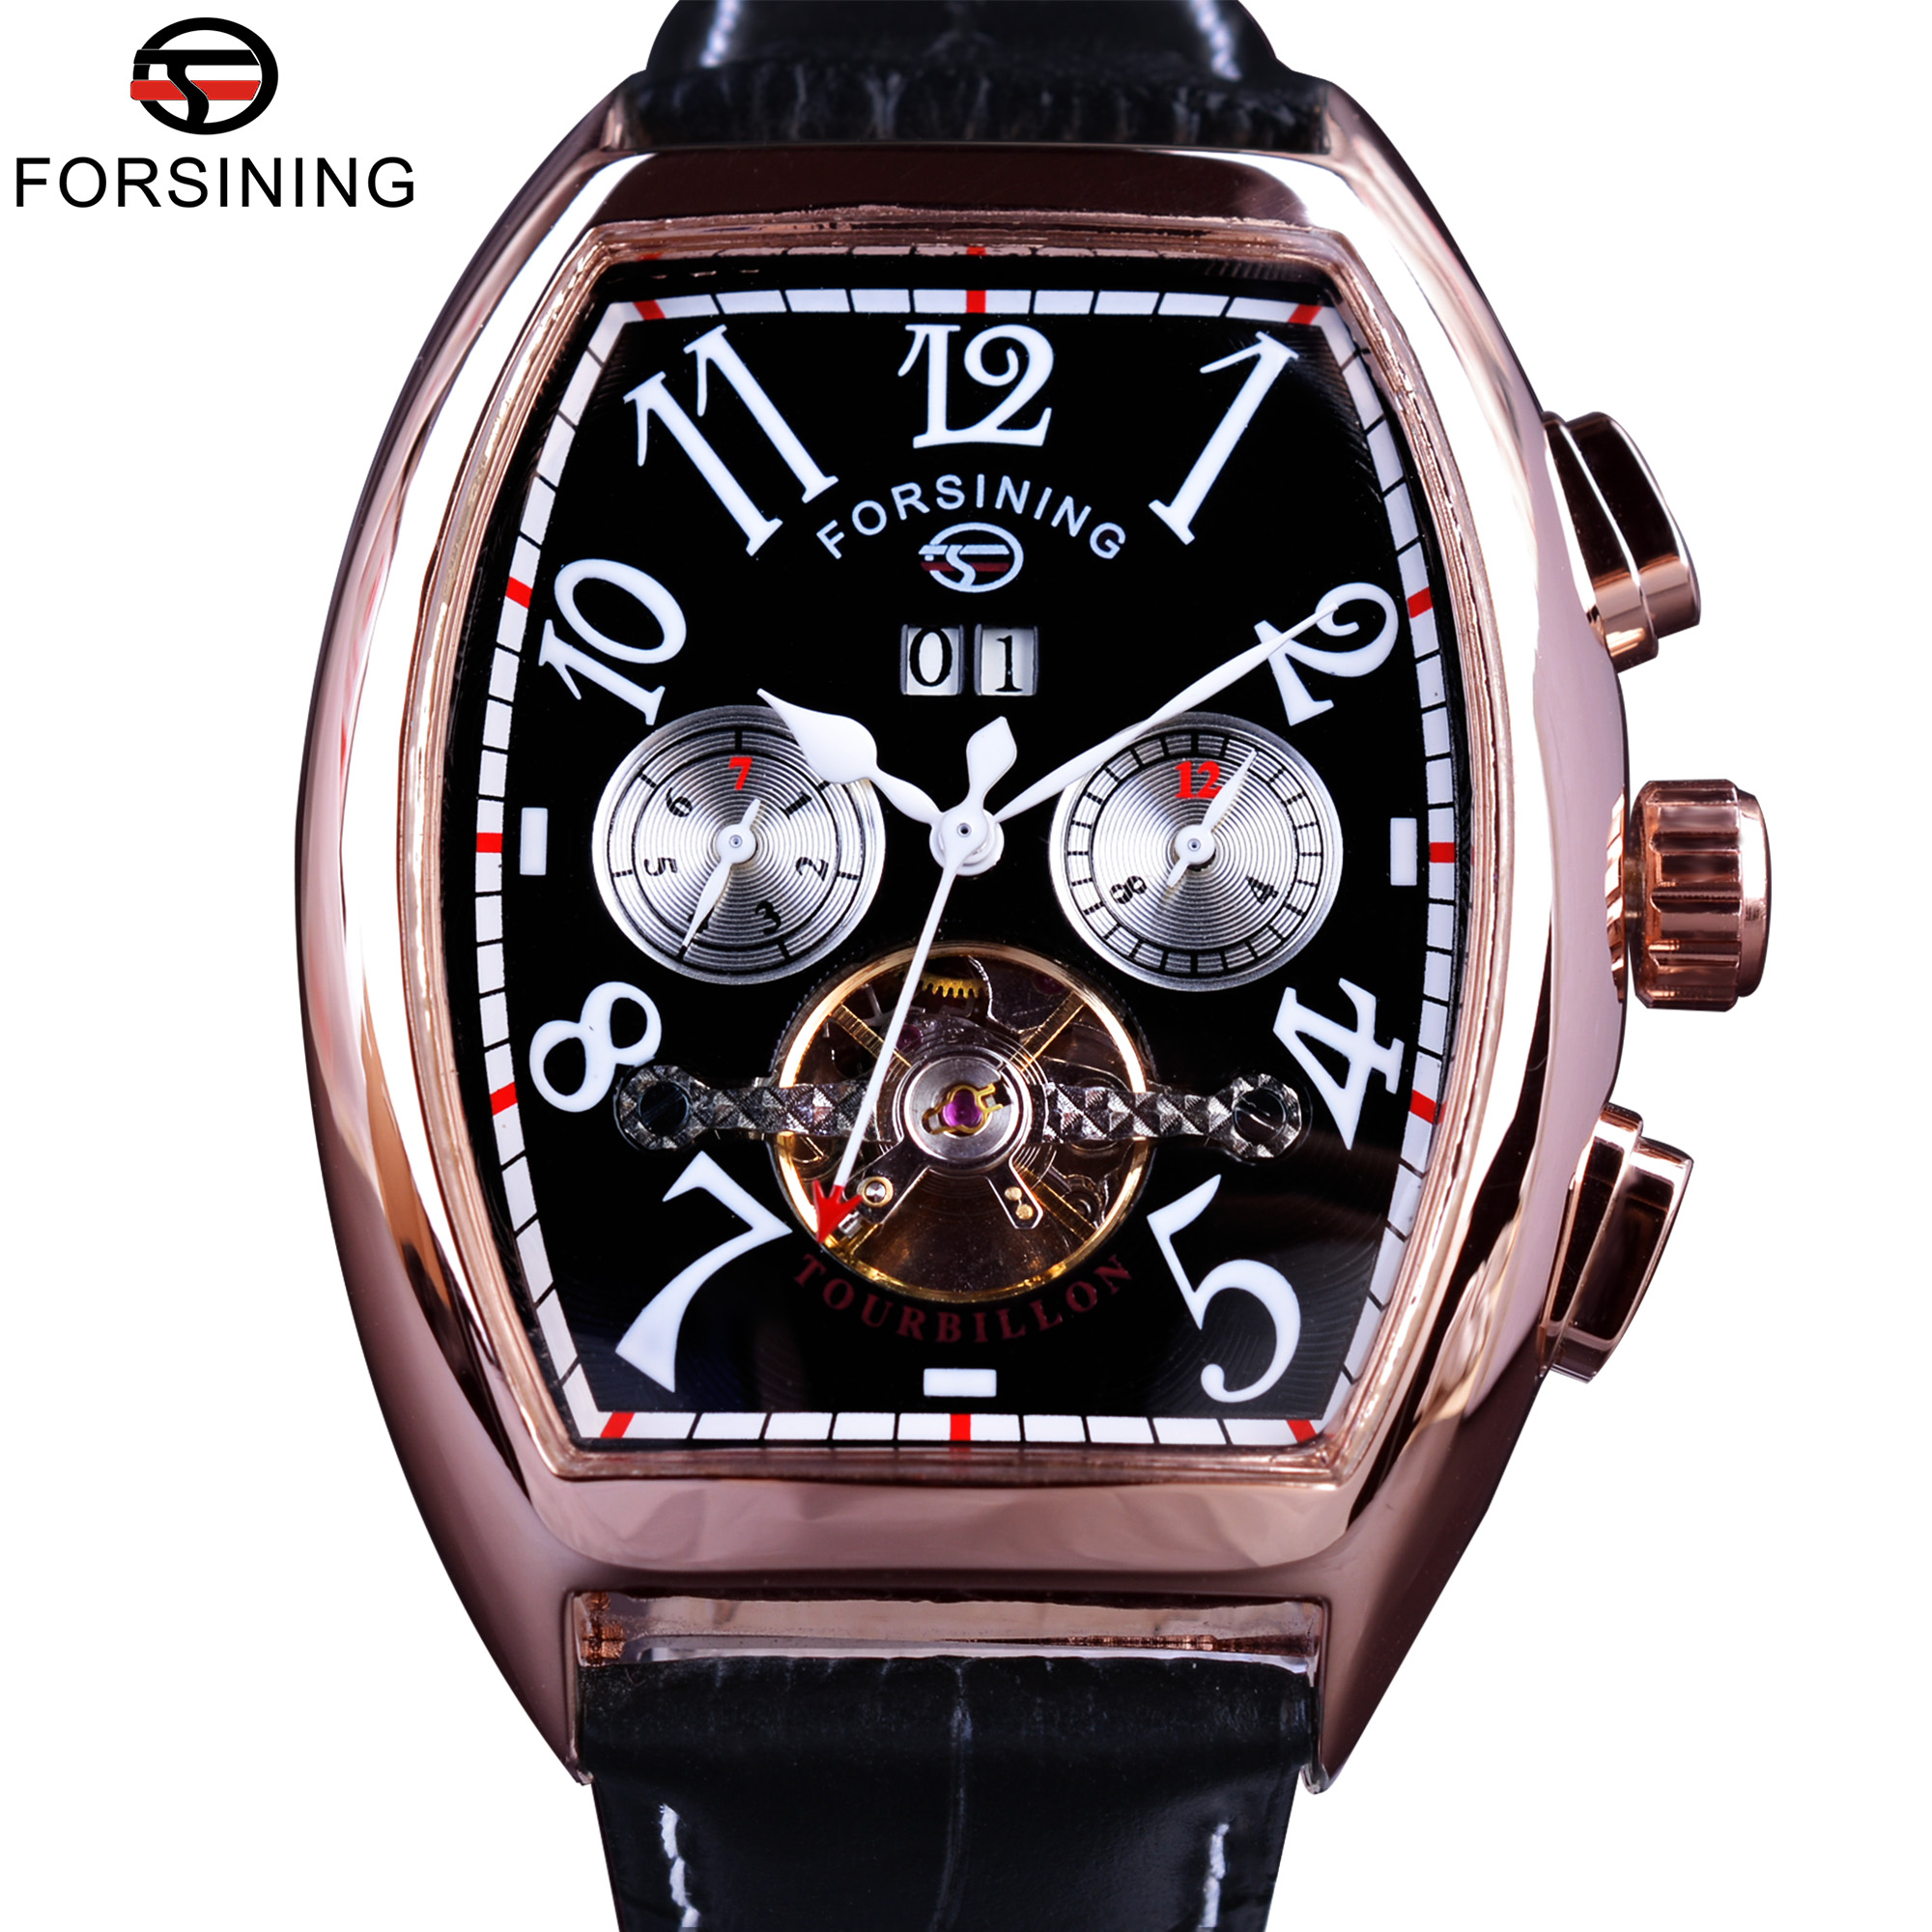 Forsining Date Month Display Rose Golden Case Mens Watches Top Brand Luxury Automatic Watch Clock Men Casual Fashion Clock Watch forsining mens watches top brand luxury golden men mechanical skeleton watch mens sport watch designer fashion casual clock men